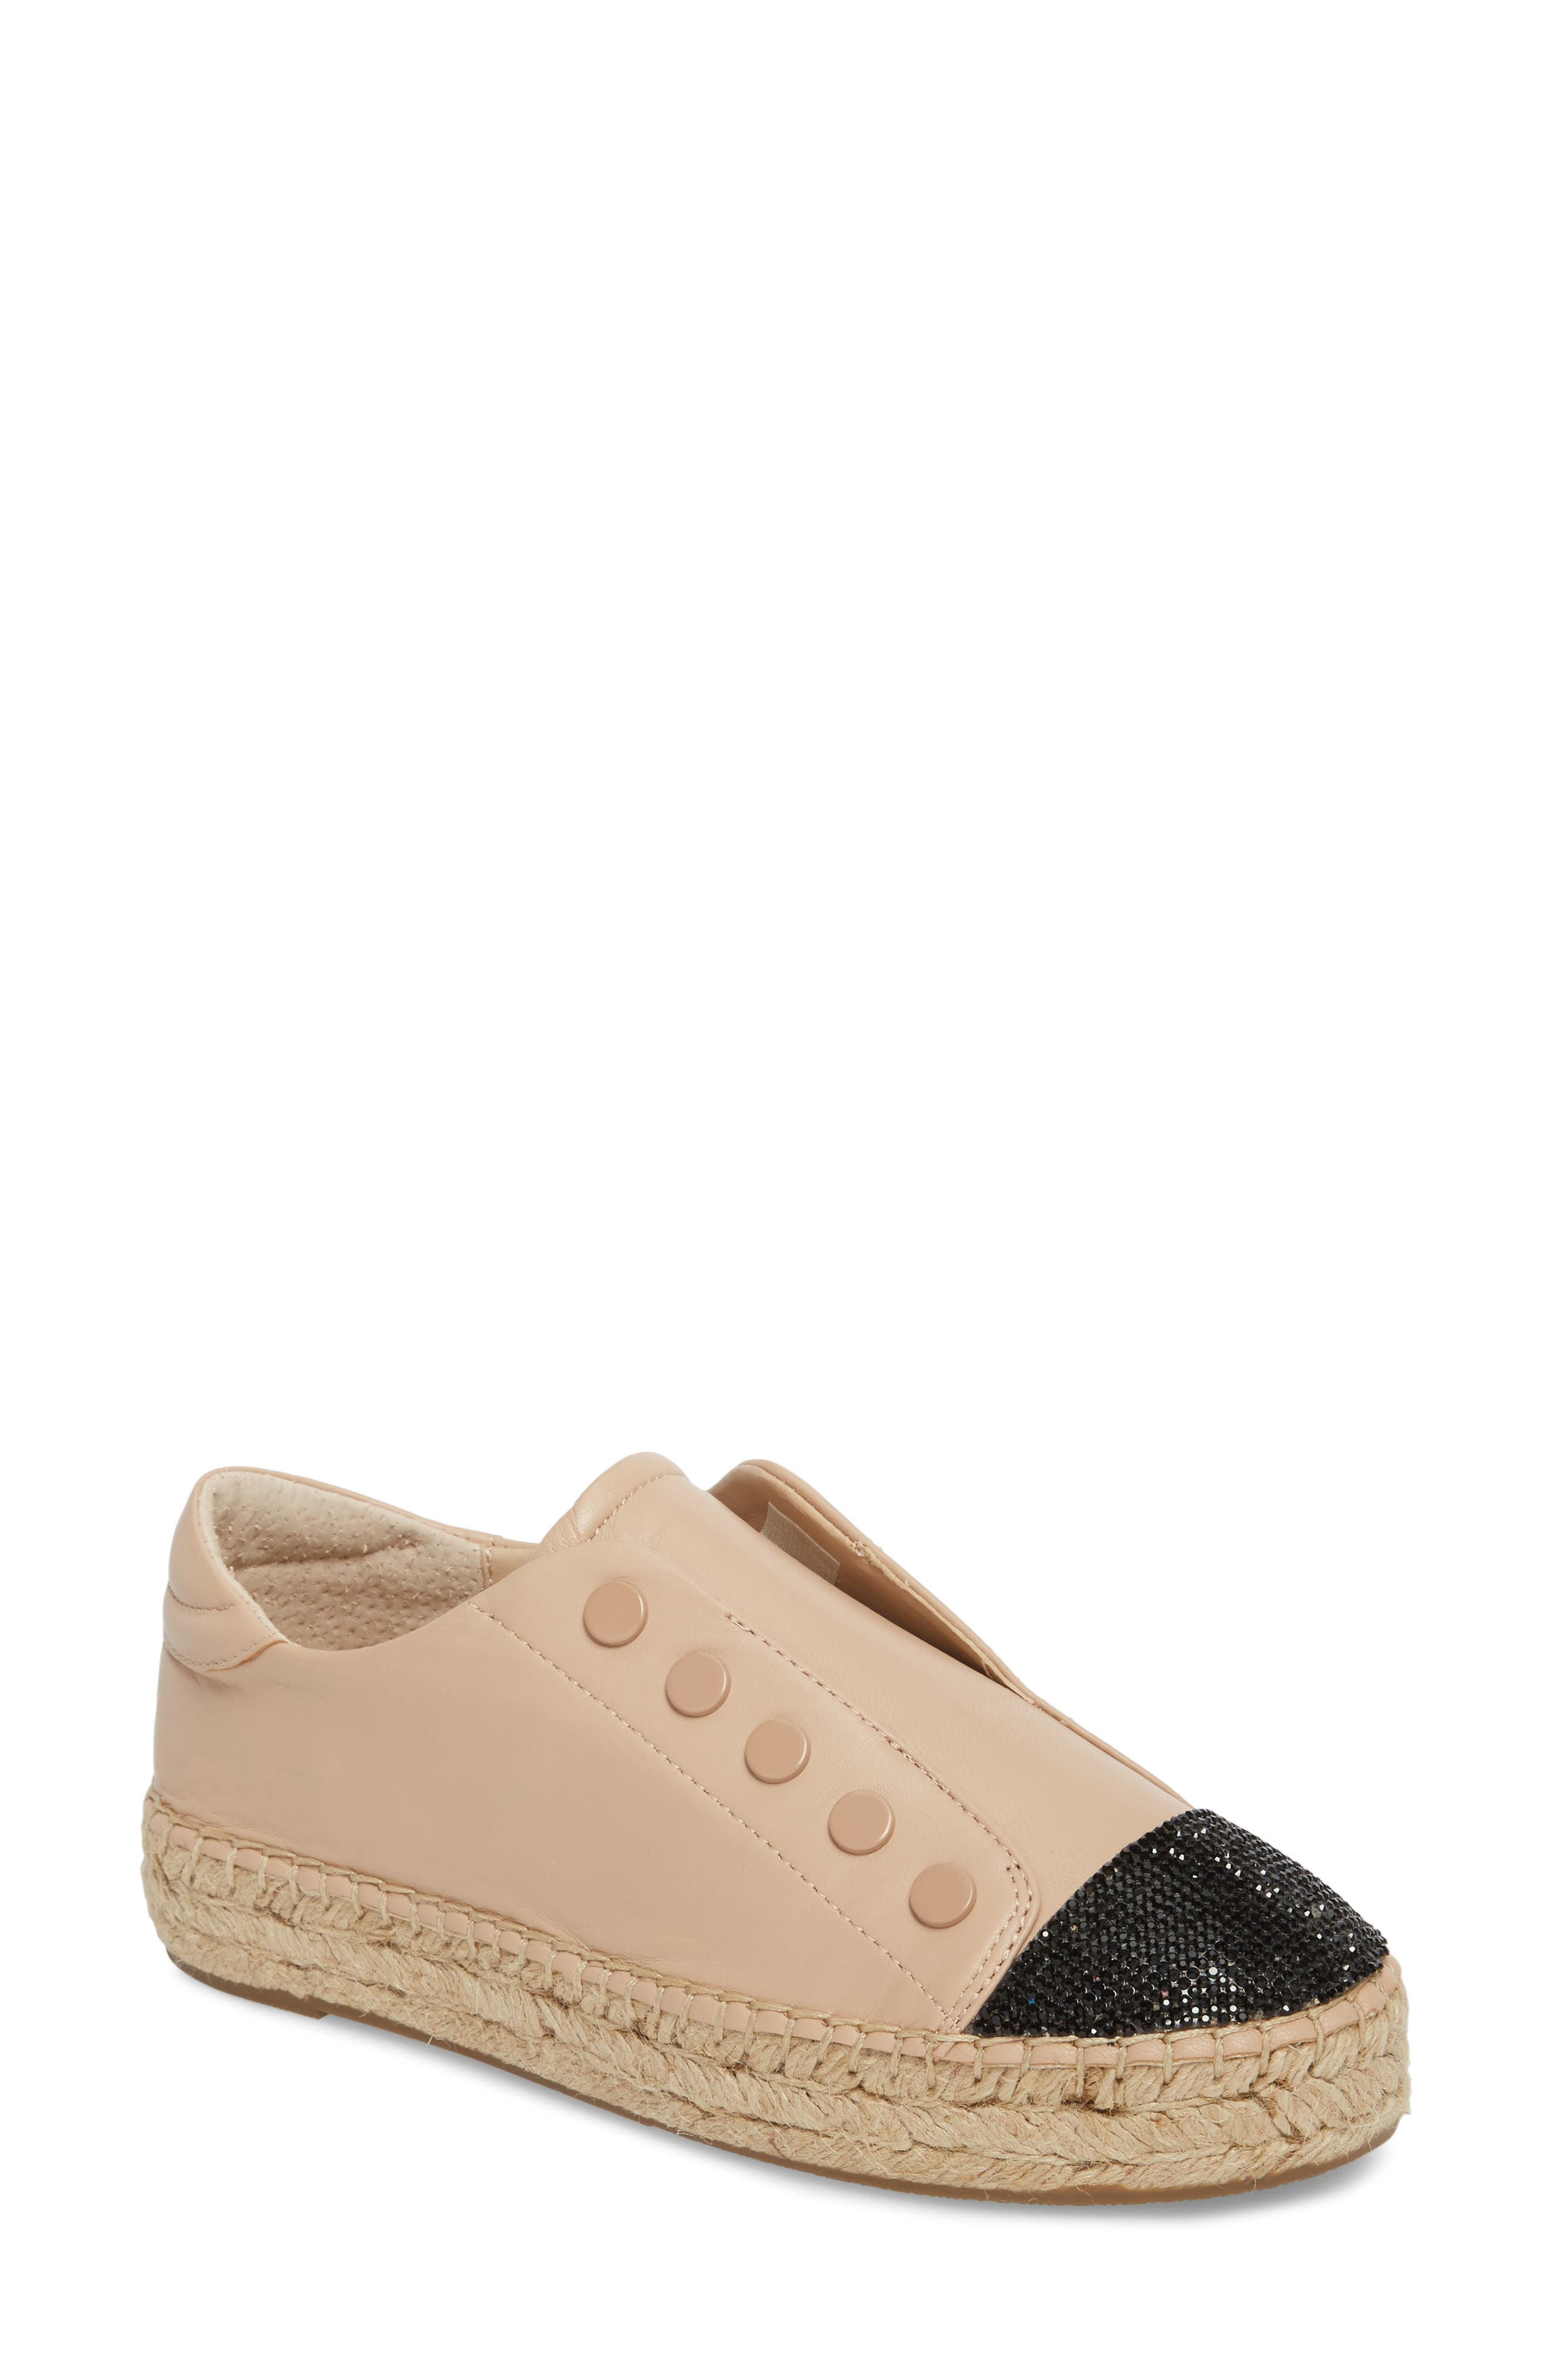 Juniper Espadrille Sneaker,                             Main thumbnail 1, color,                             Light Latte